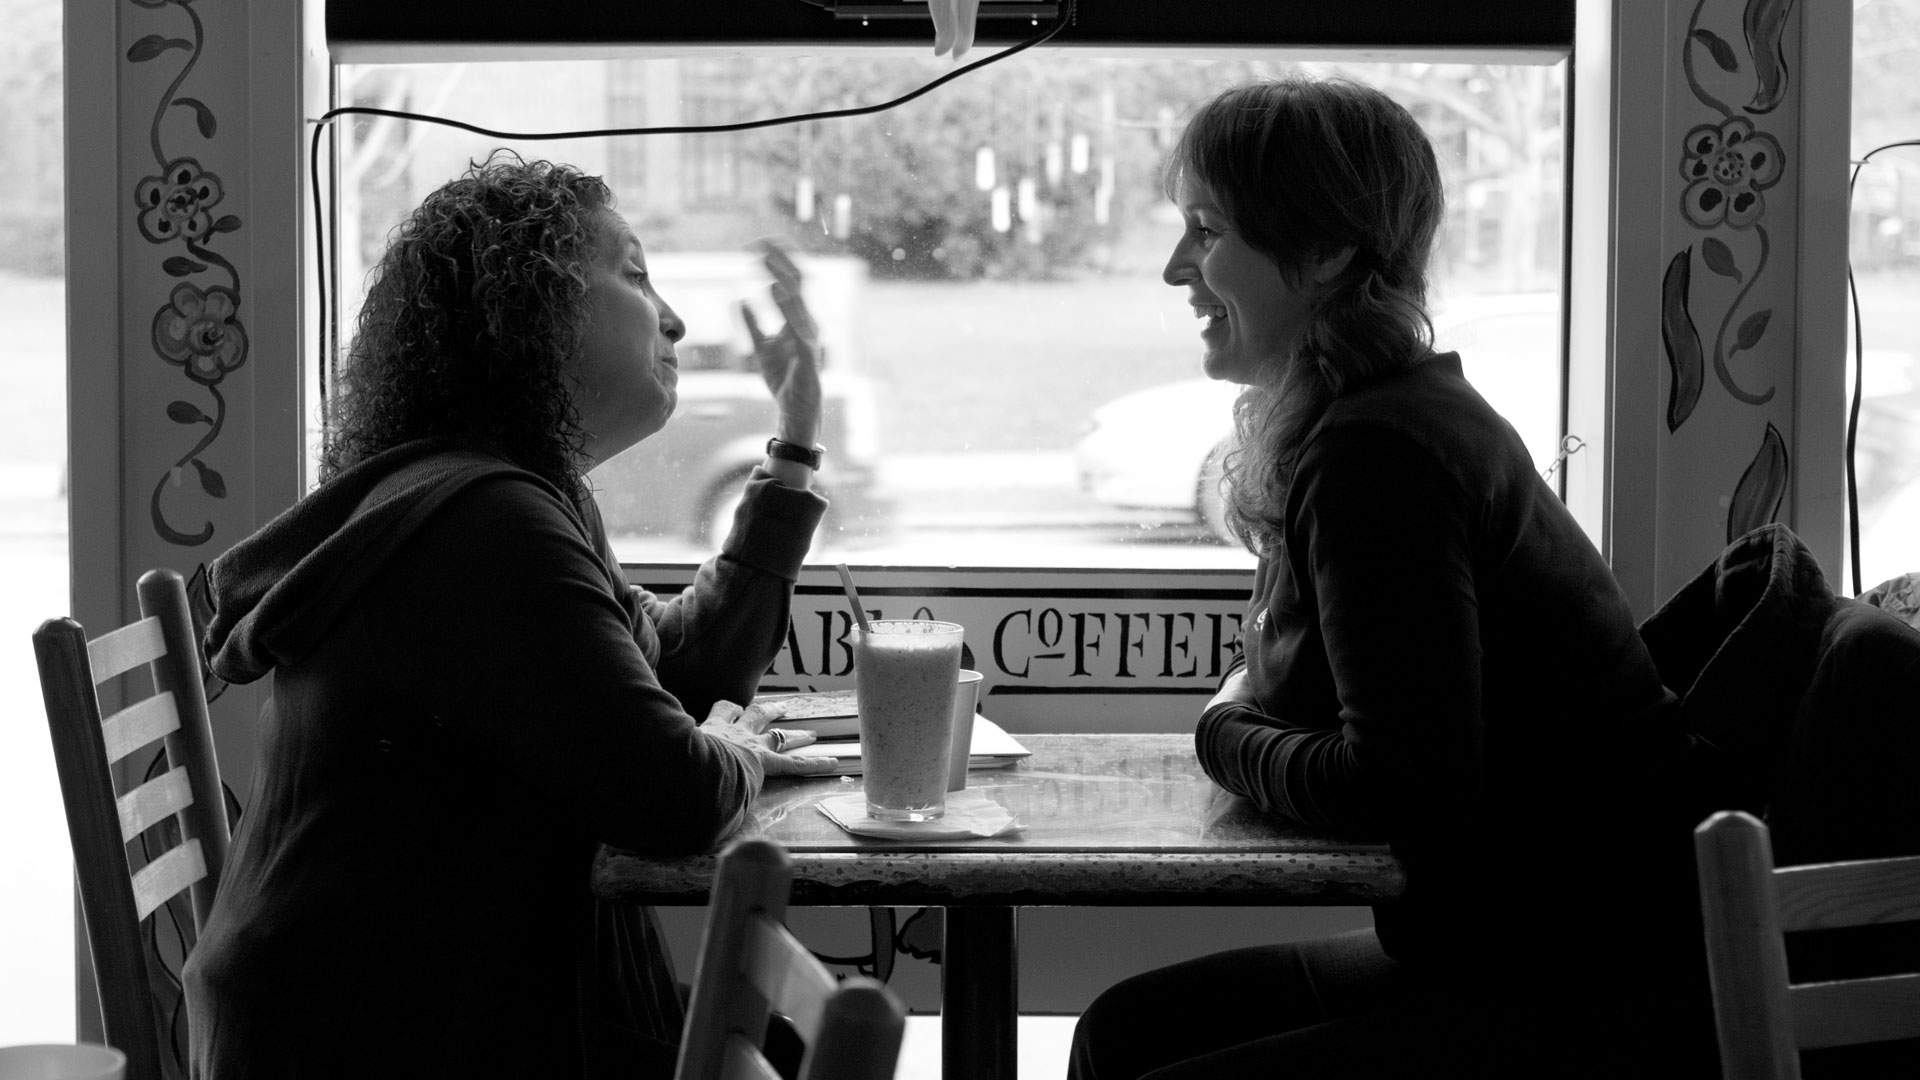 Two people having a conversation in a cafe.